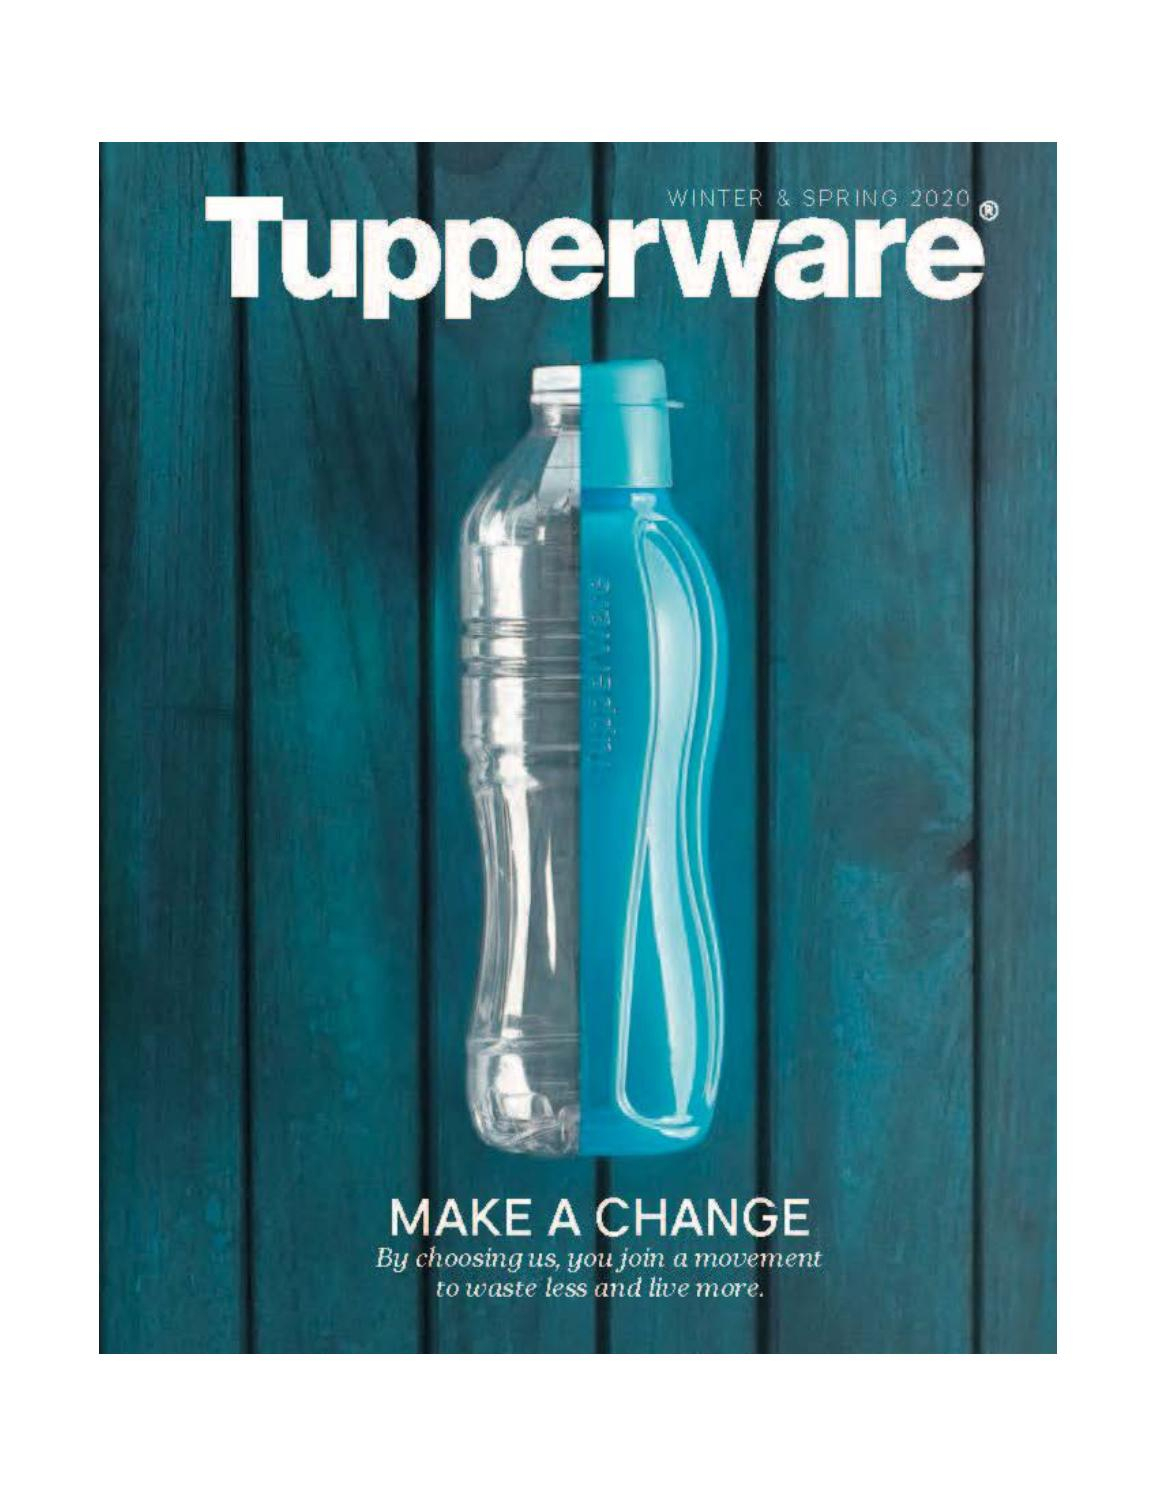 Tupperware Winterspring 2020 Catalog By Alicia Manning  Issuu within Tupperware Catalogue 2020